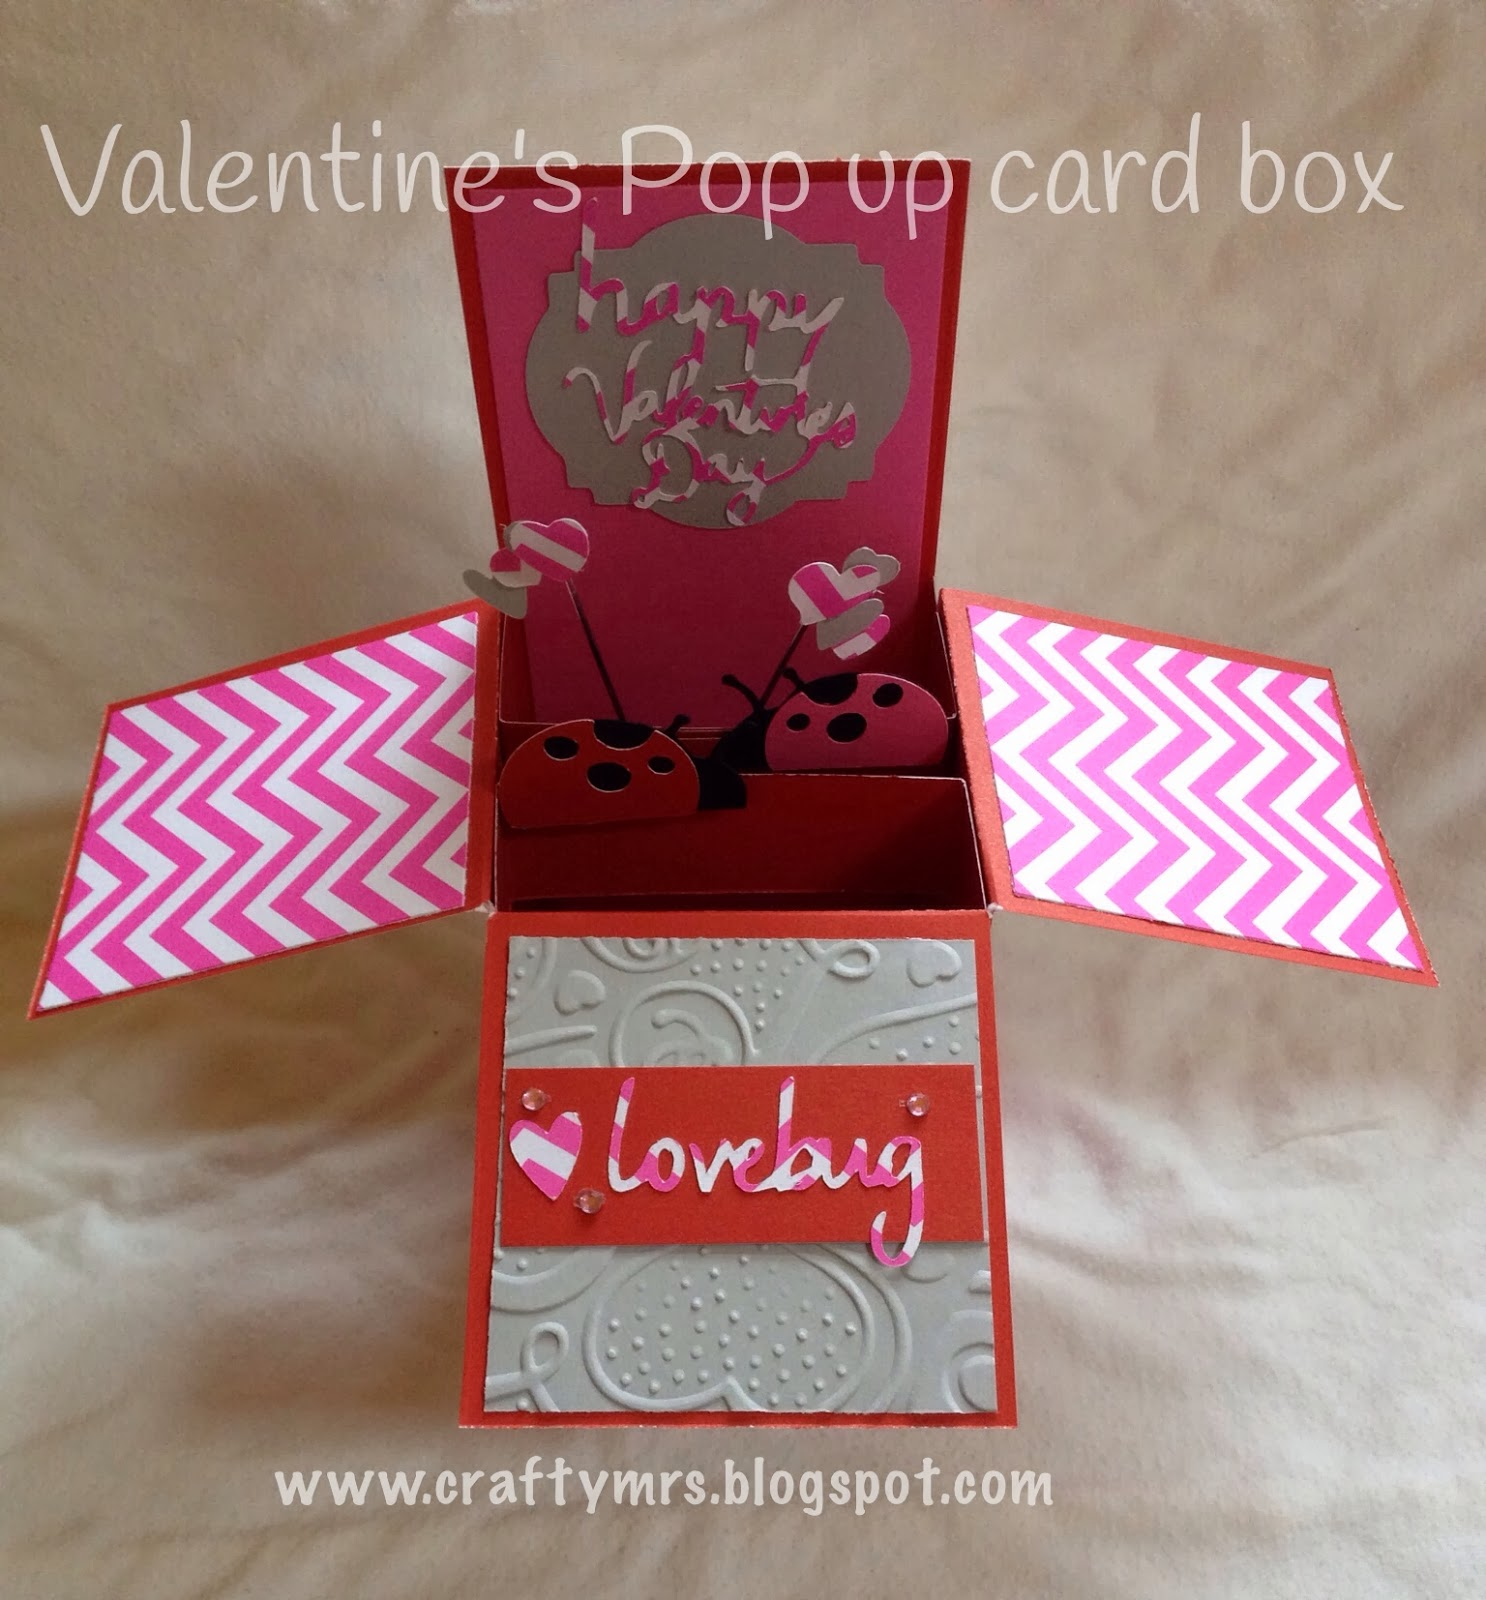 CraftyMrs Valentines Pop up Card Box – Valentines Pop Up Card